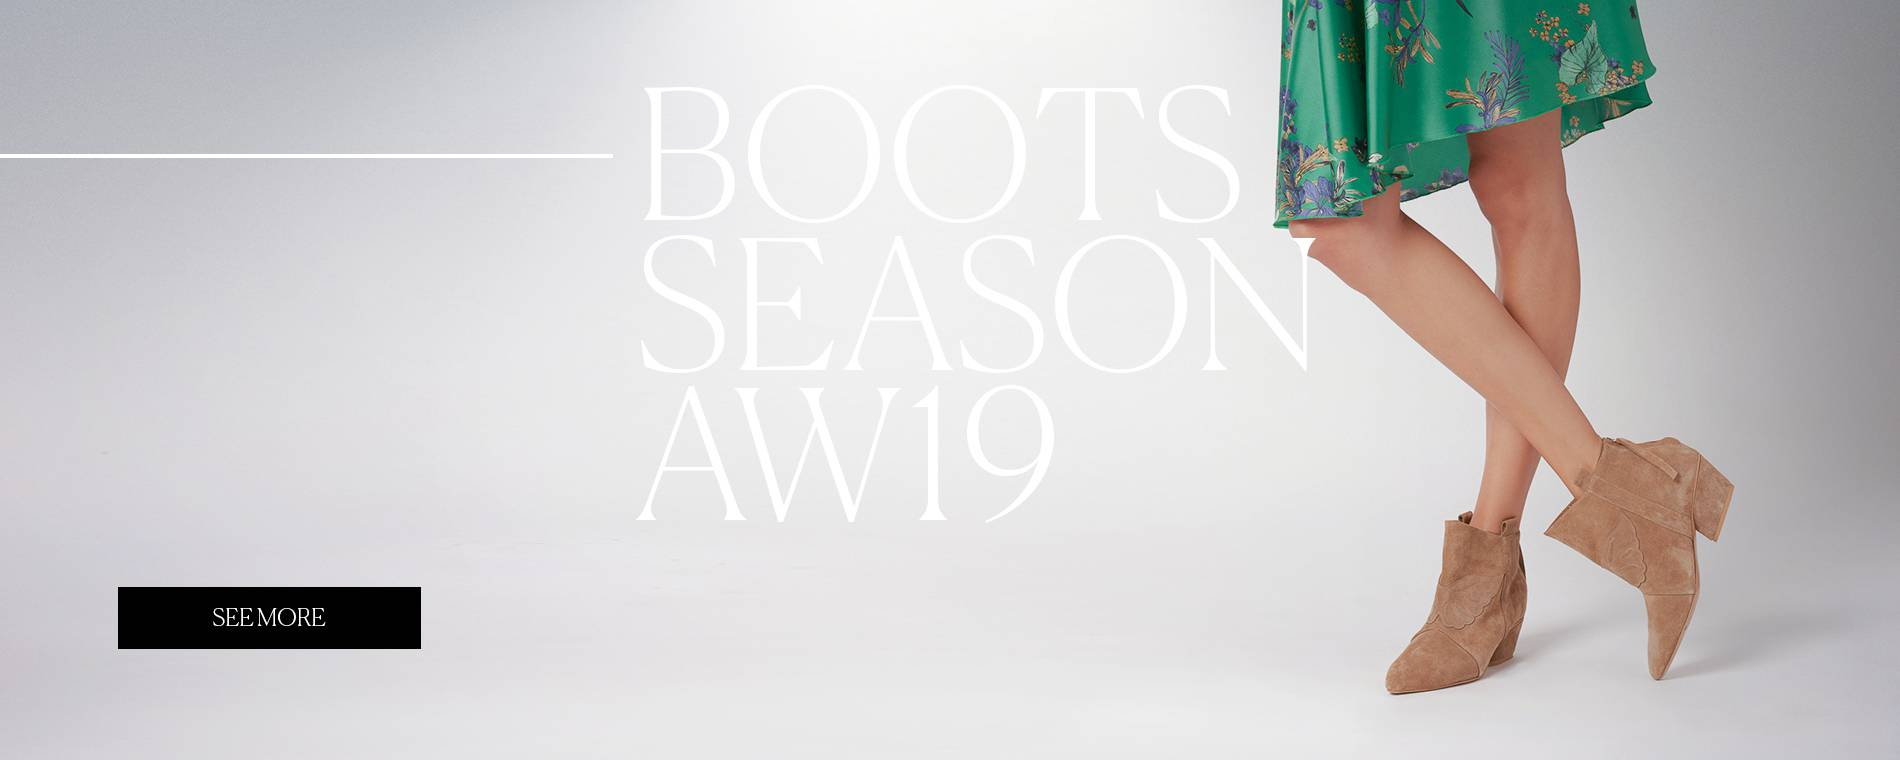 Boots Season With L37